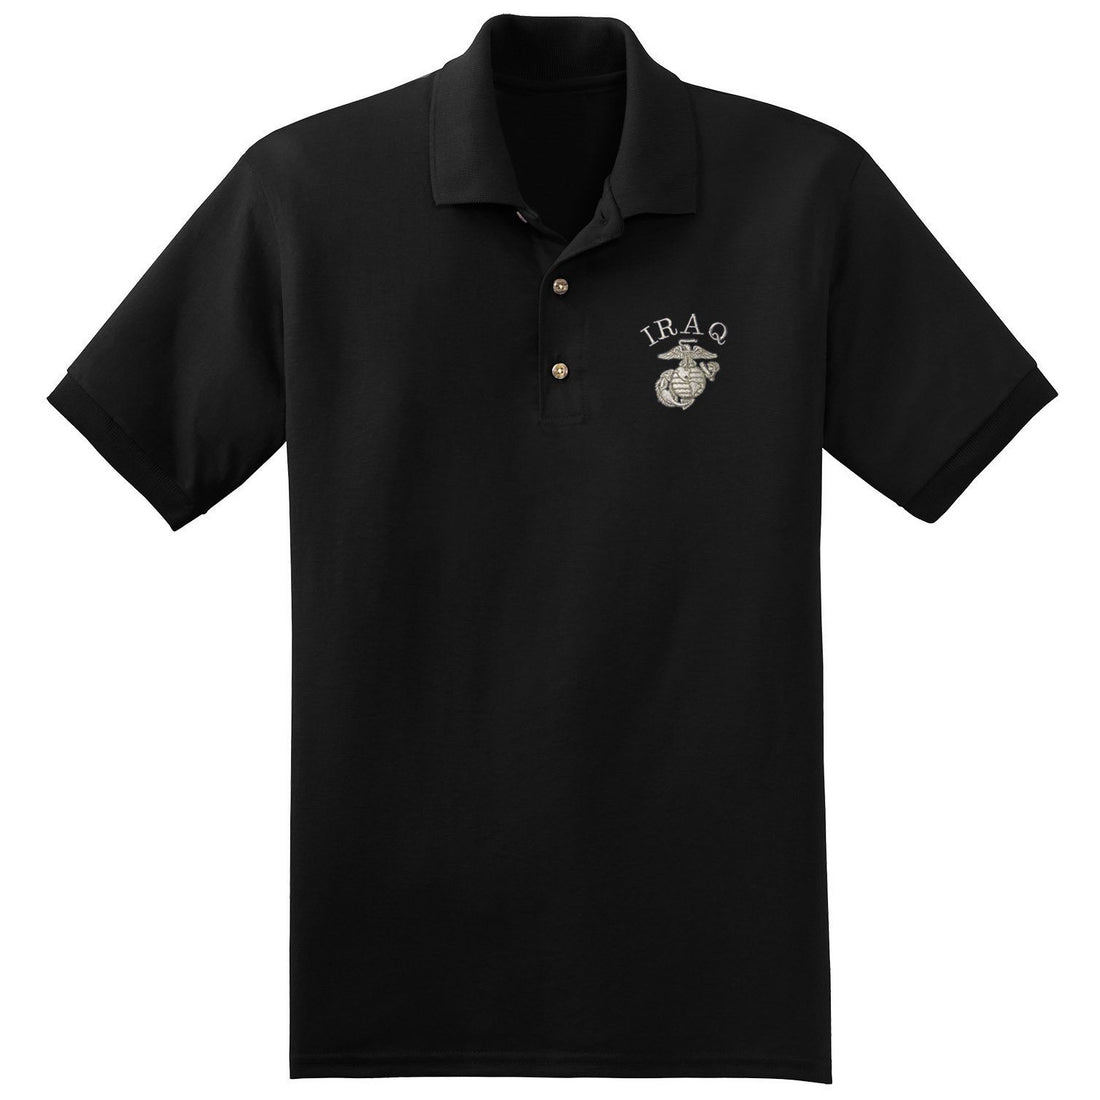 Iraq EGA  Polo (MULTIPLE COLORS) - Marine Corps Direct  - 2